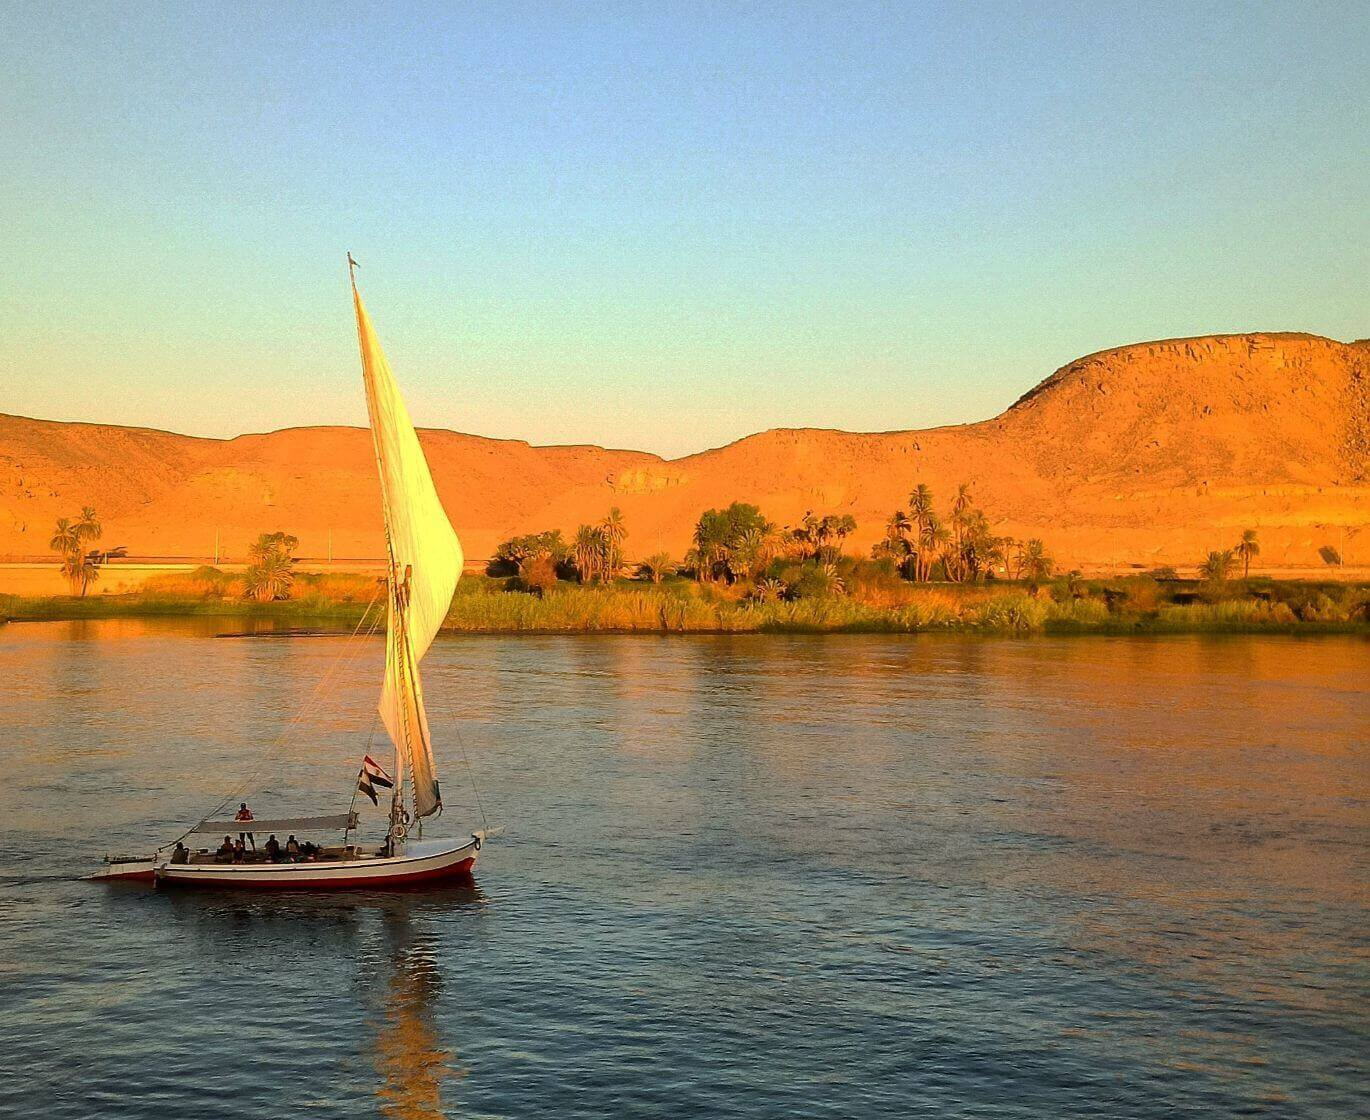 sailing boat in the middle of Nile river